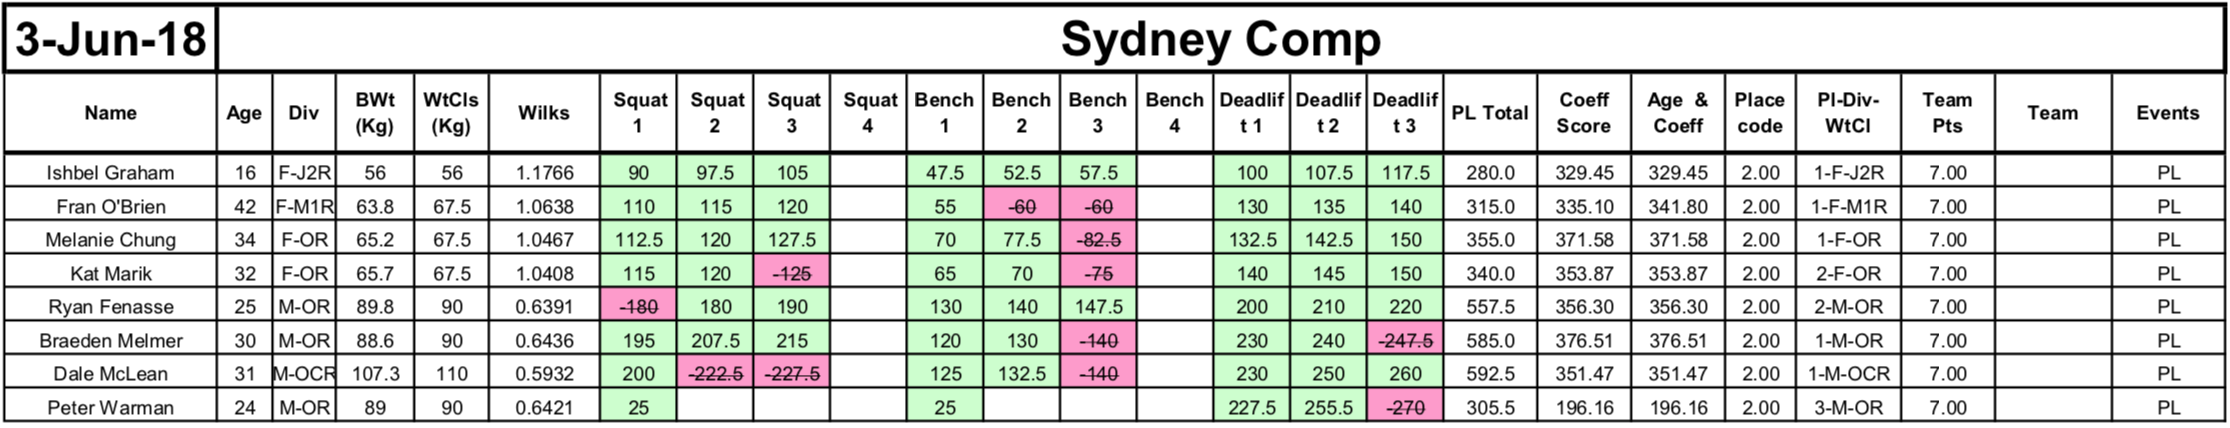 Sydney Competition 2018 - Awaiting Results